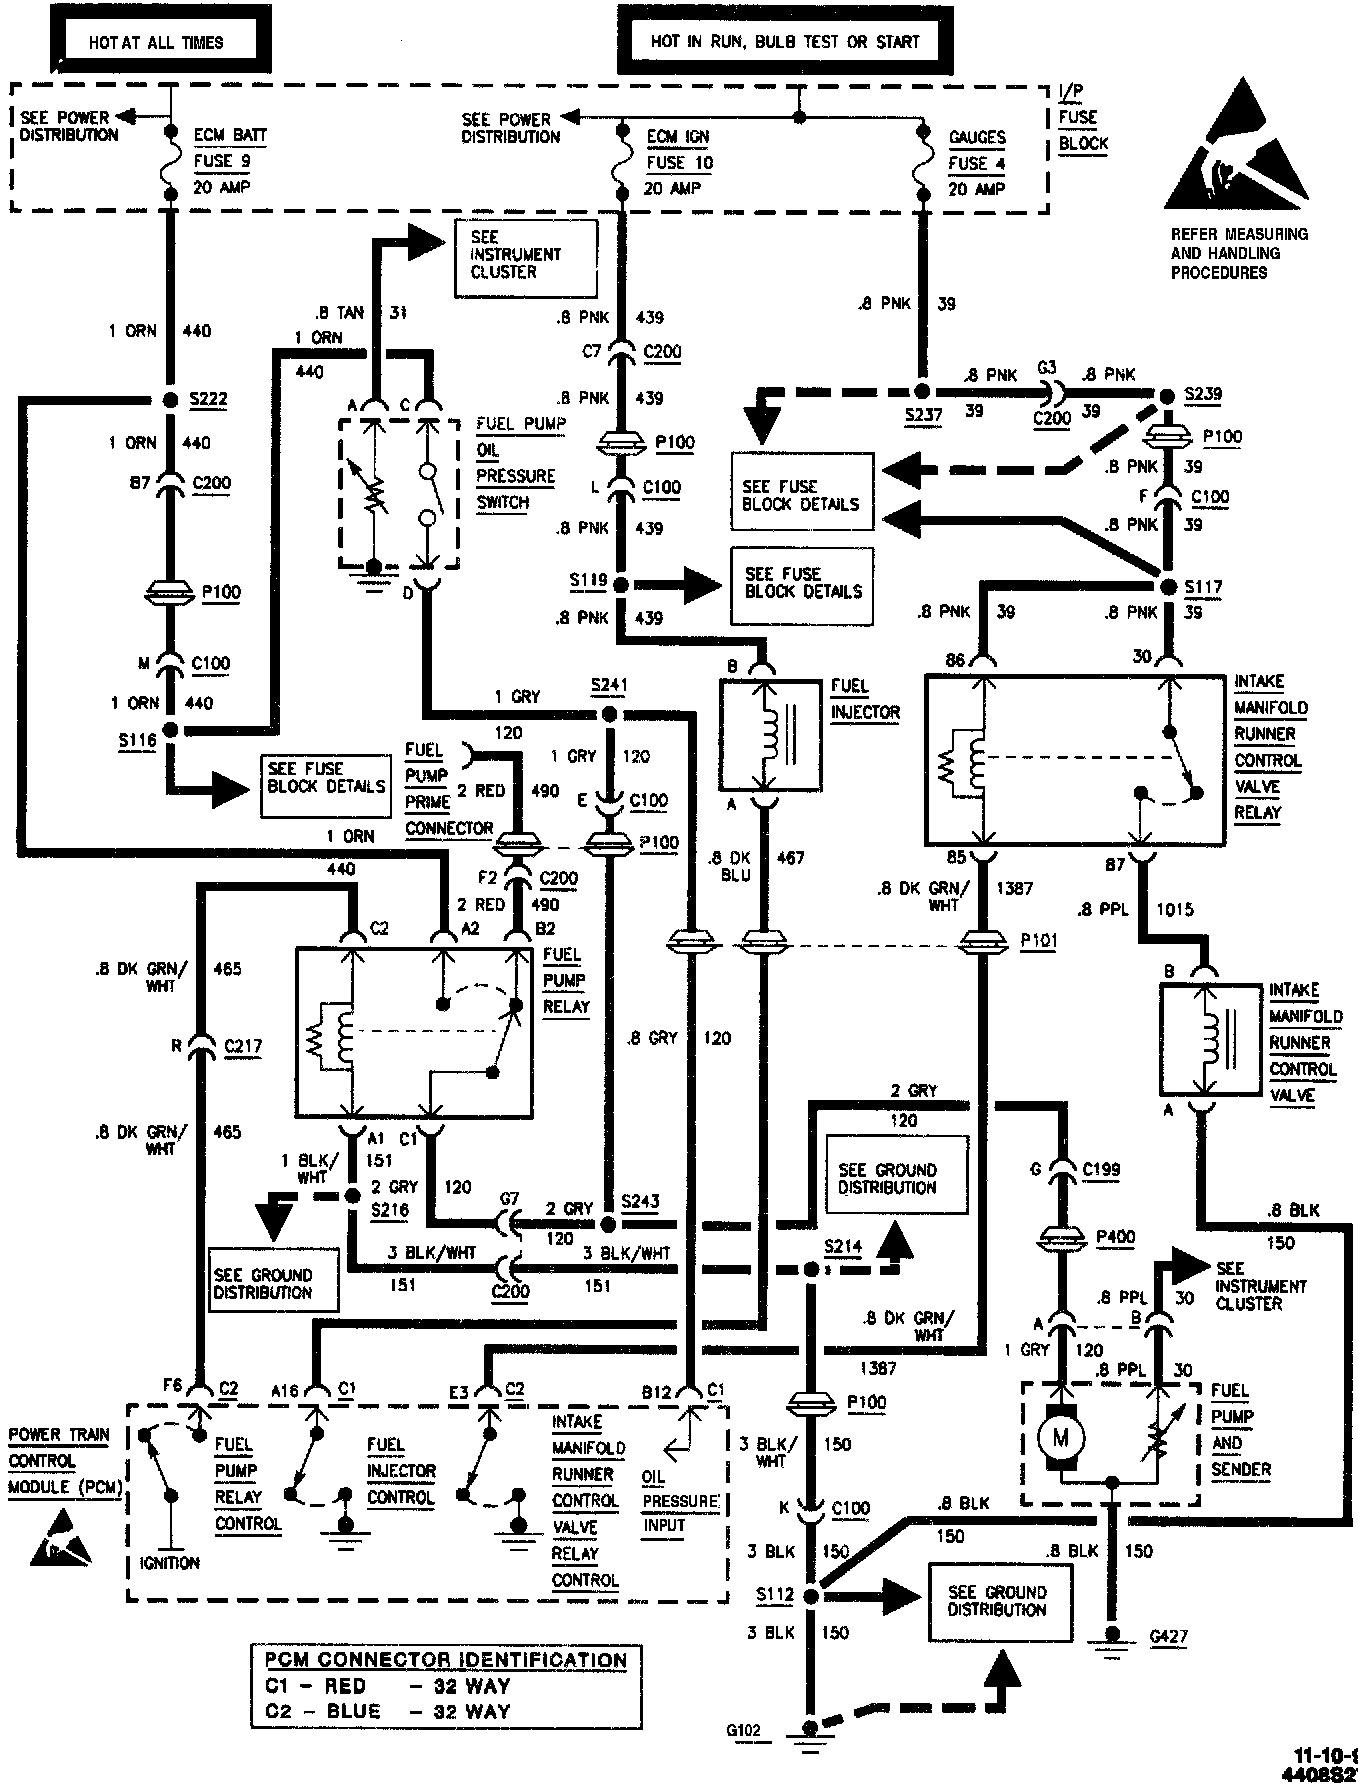 Gmc Truck Wiring    Diagrams     wiring    diagram    symbols and guide